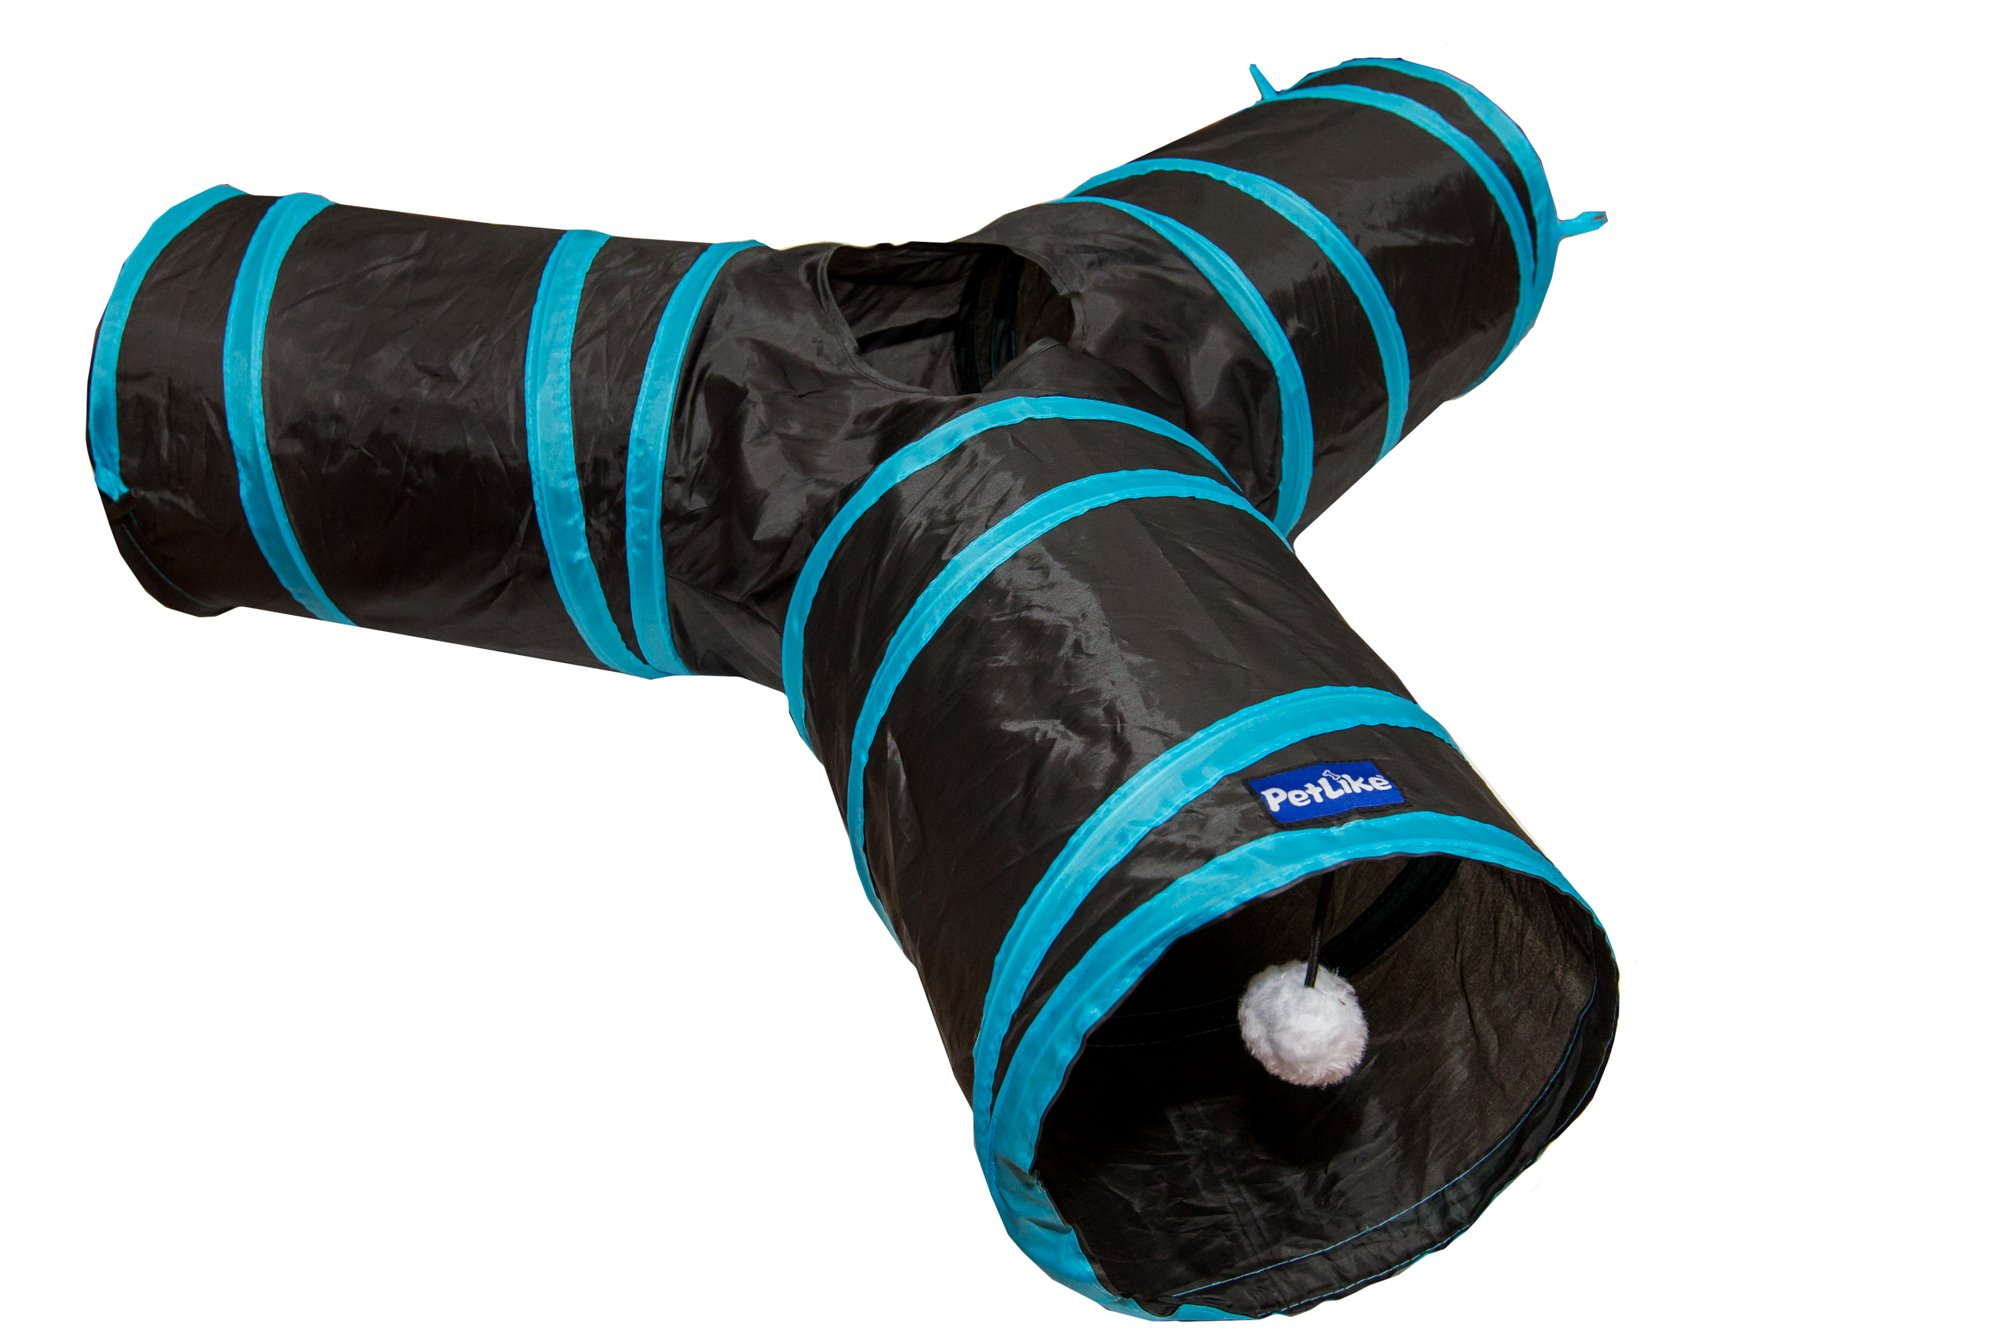 PetLike 3 Way Cat Tunnel Crinkle Collapsible Pet Tube Hideaway Interactive Play Toy with Ball by PetLike (Image #1)